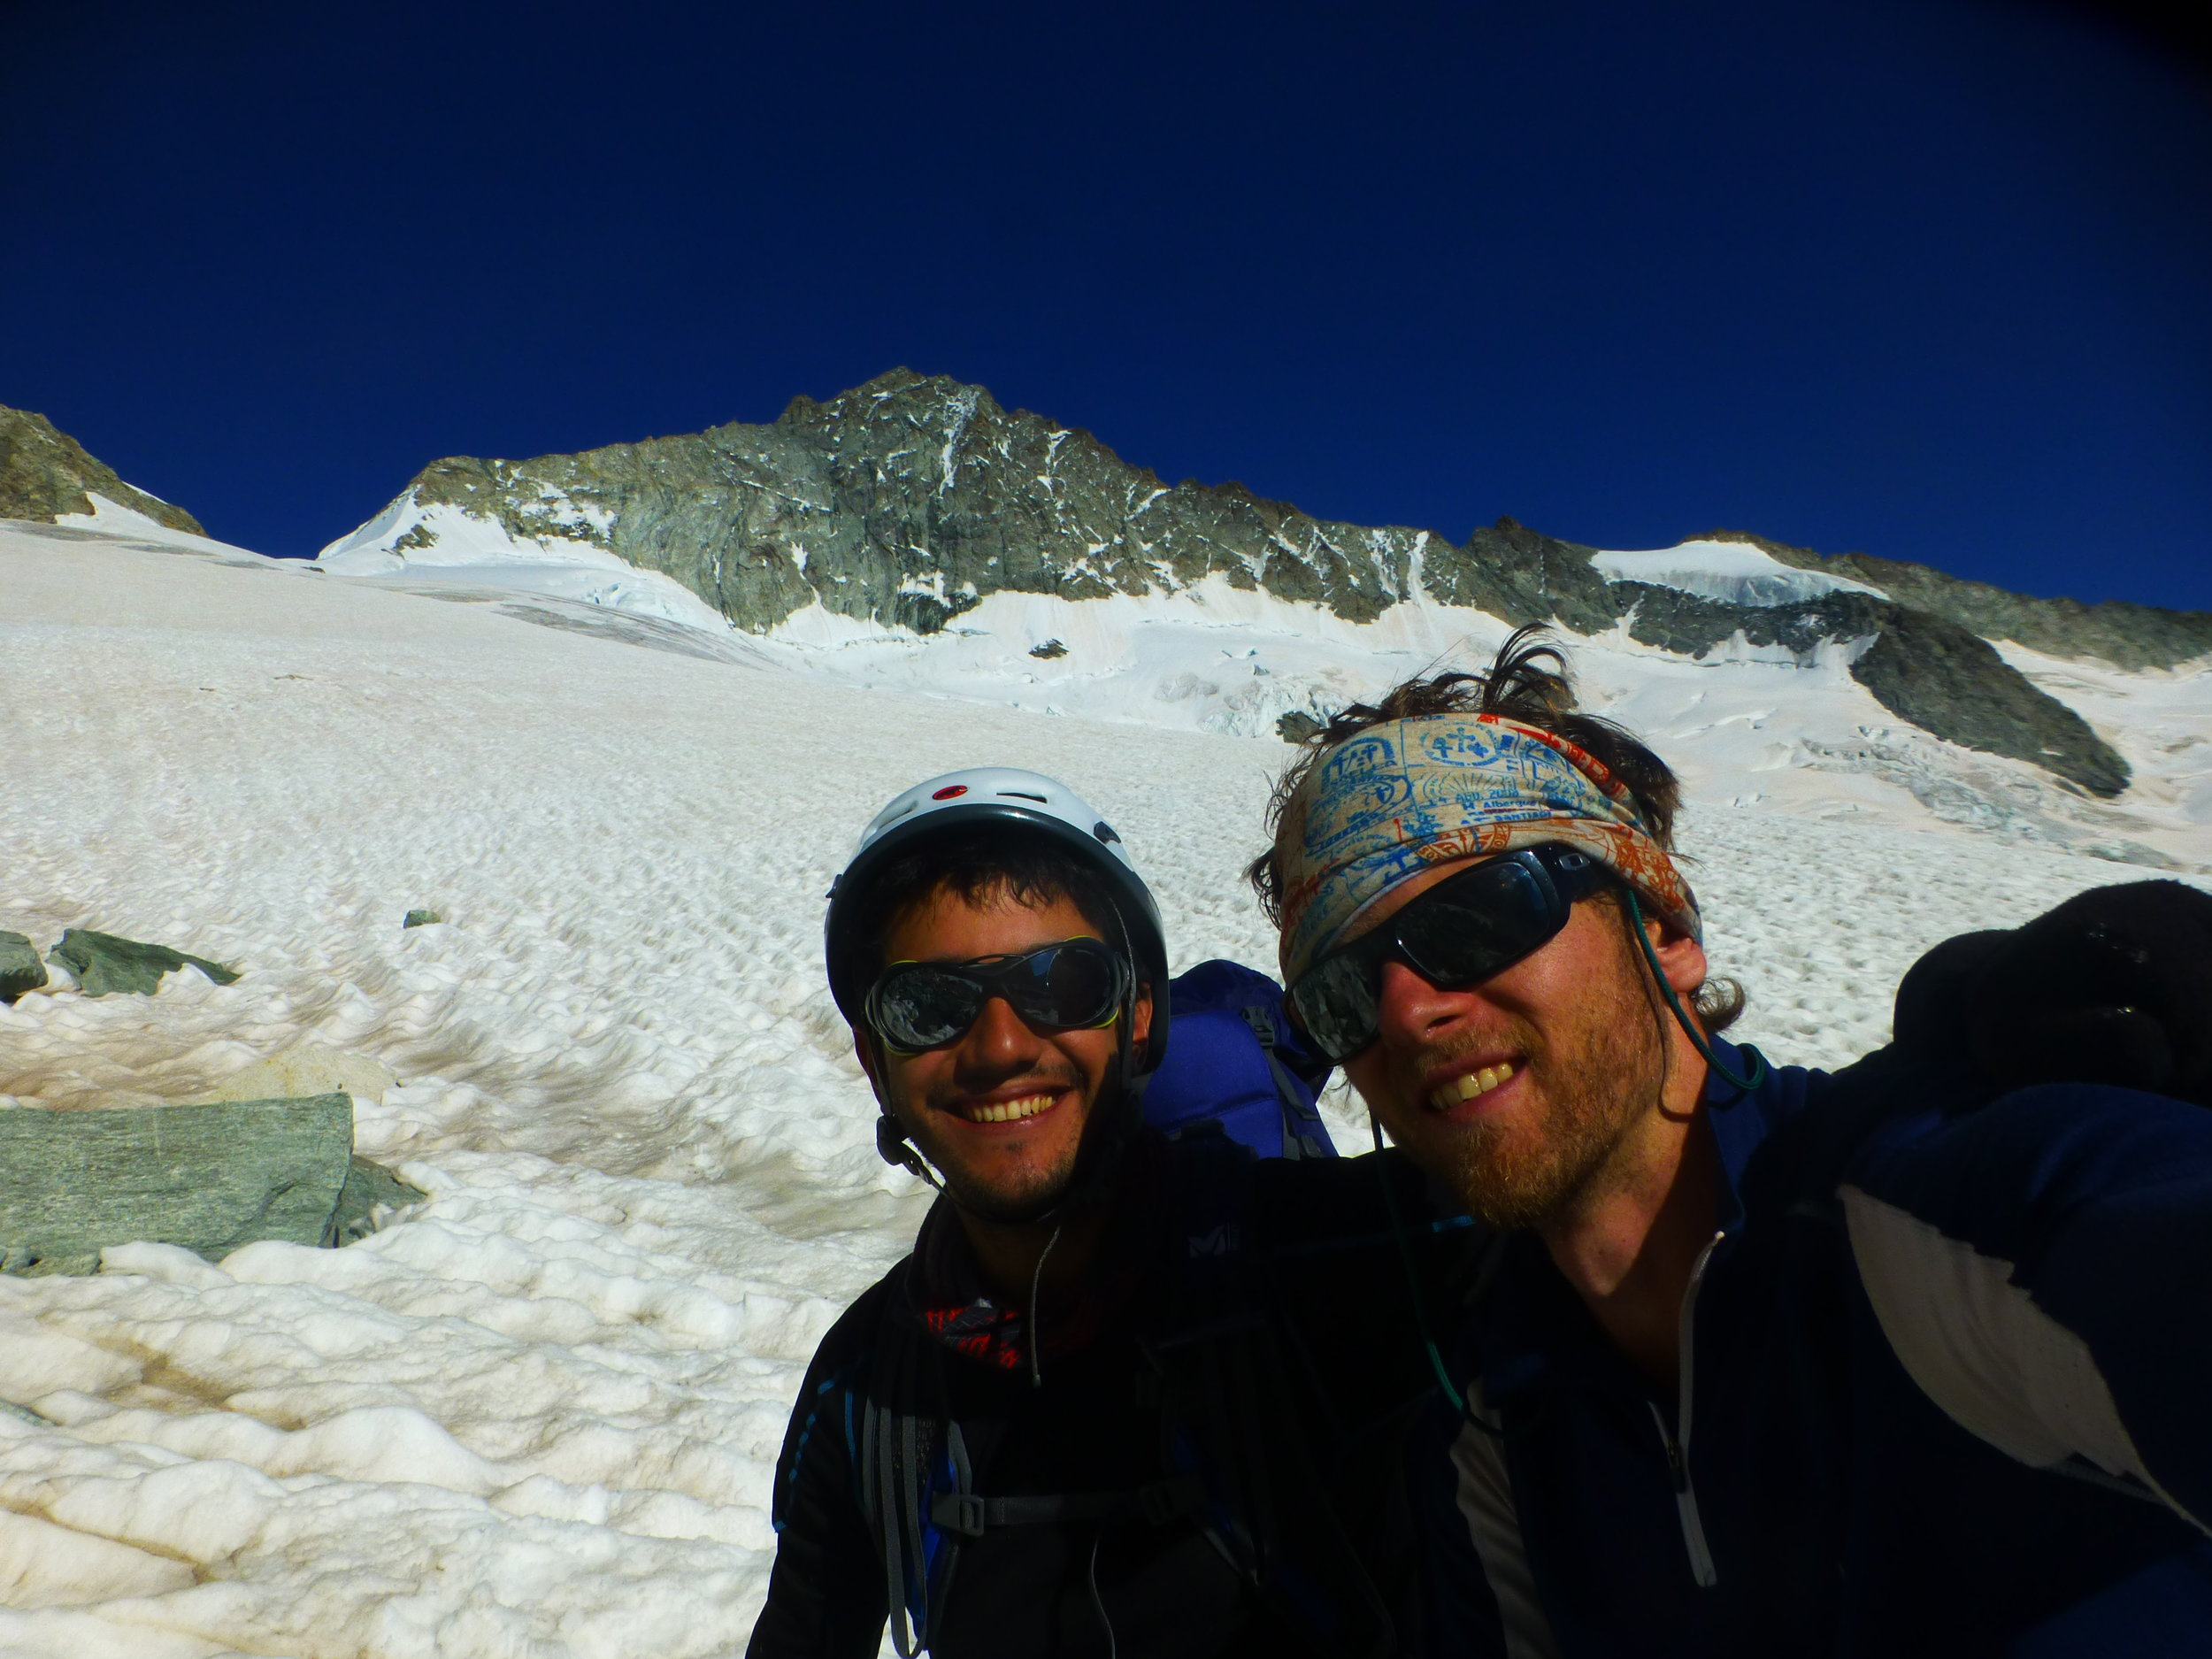 Myself and Felipe Andres at the edge of the glacier beneath the North Ridge of the Zinalrothorn after completing the route in August 2016. That trip was one of the final stepping stones leading to what I am now calling the Vertical Year.